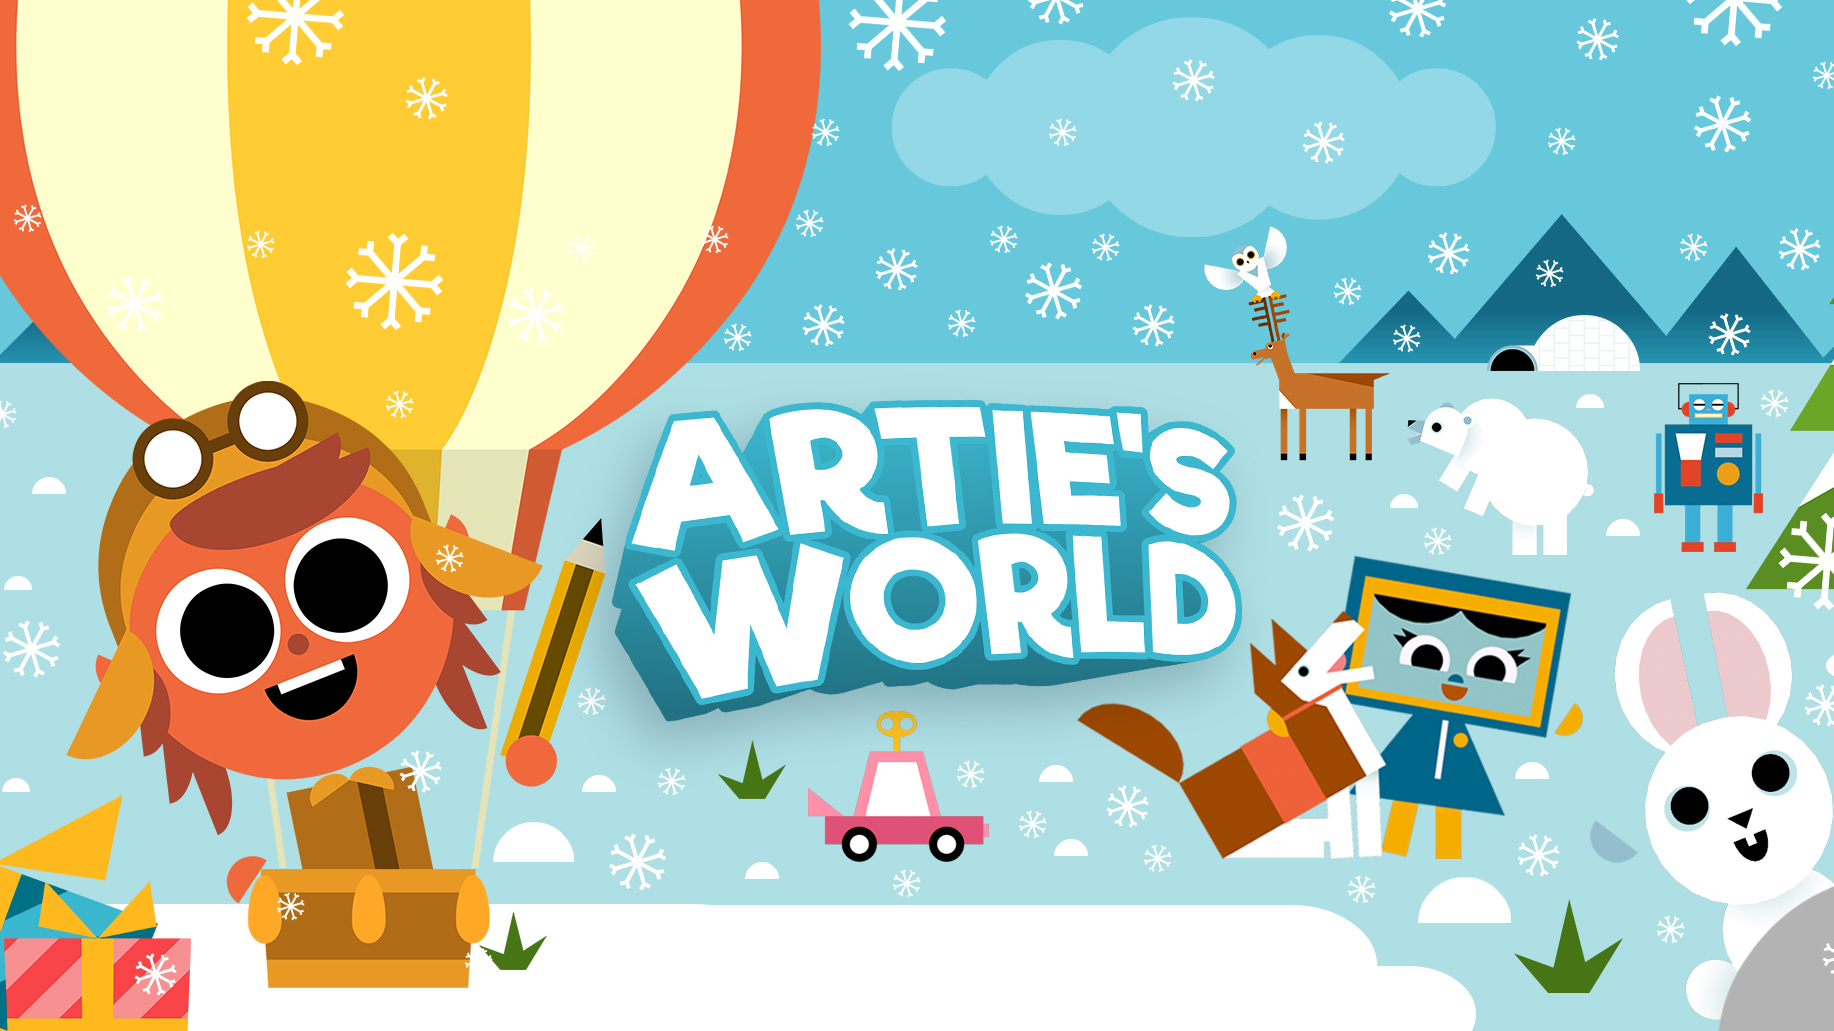 All New Worksheets With Artie\'s World ✏ 🌍 | Minilab Studios